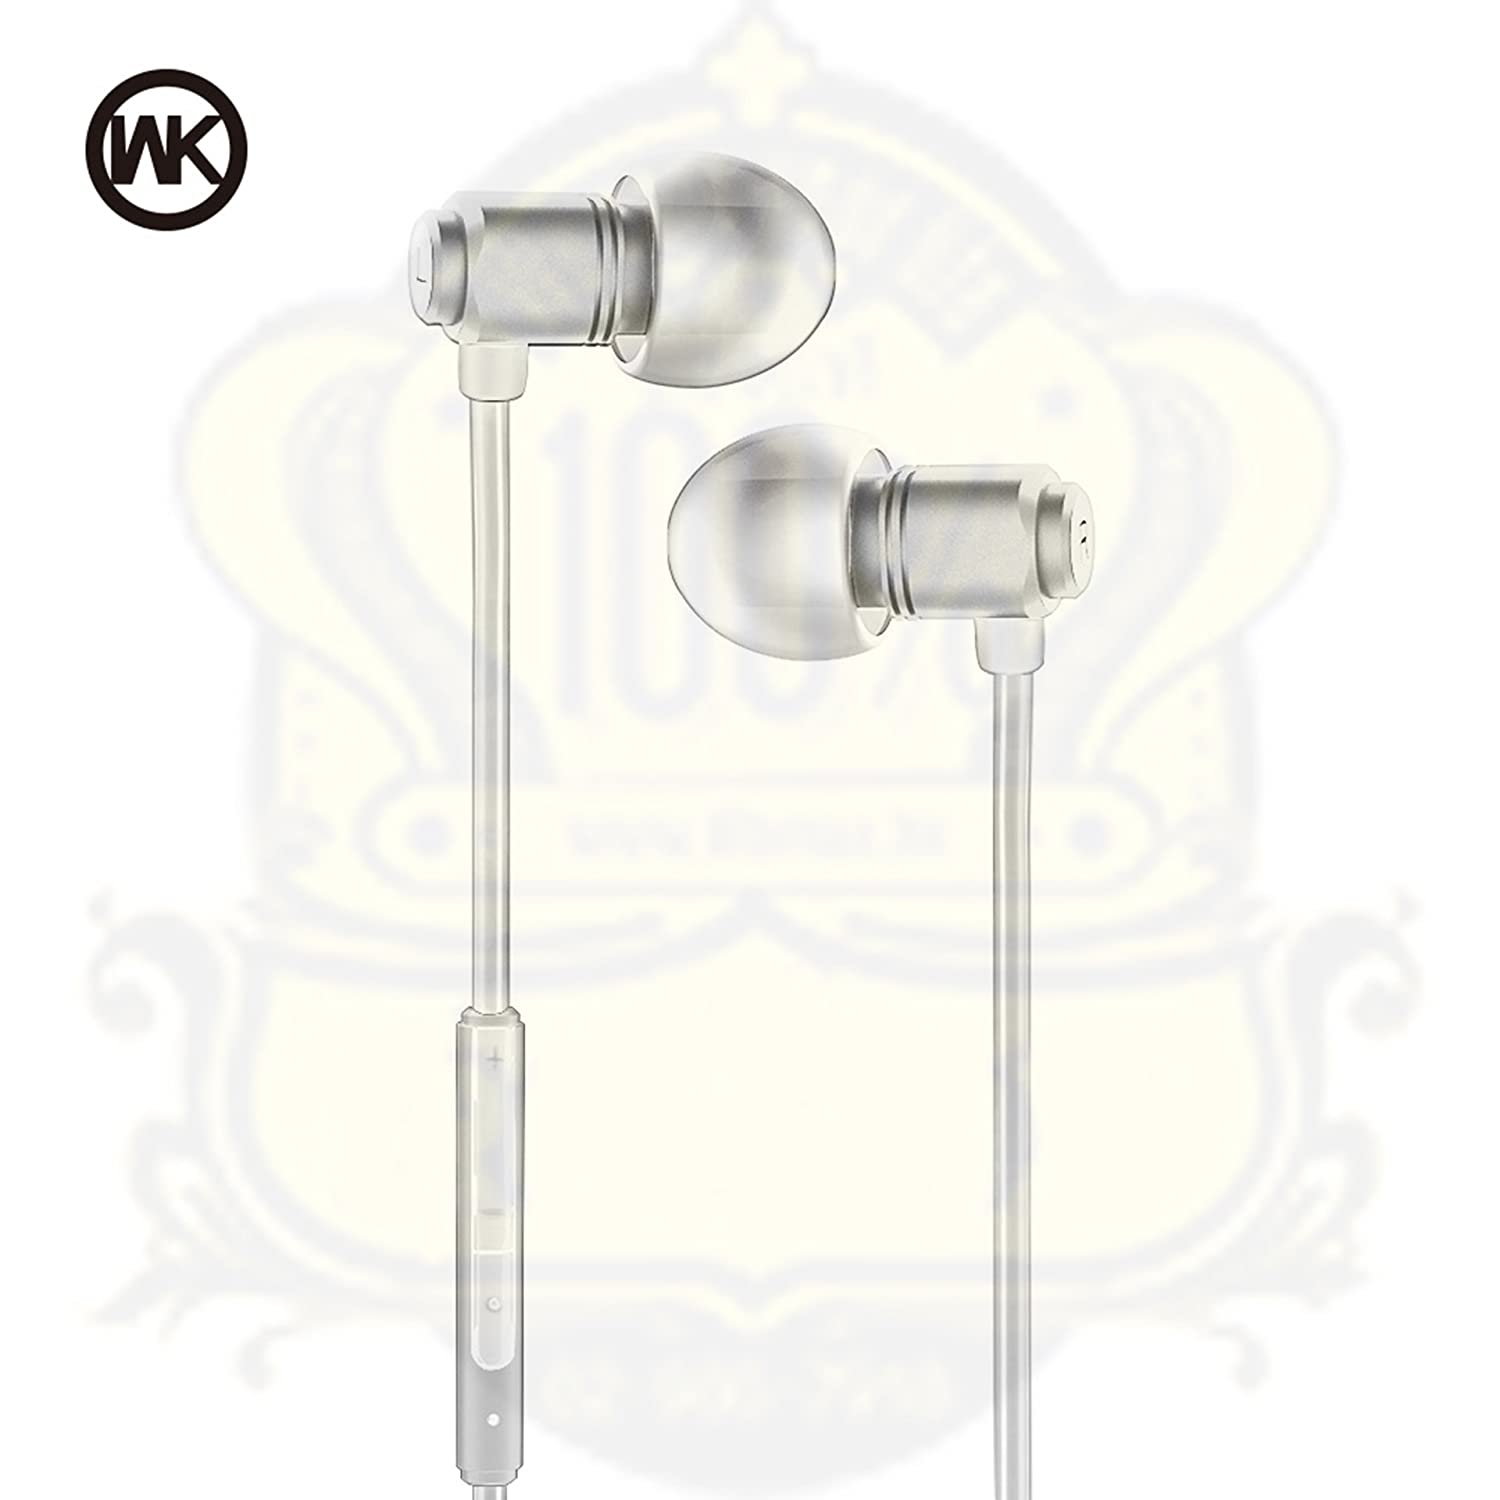 Audífonos Remax WI520 In Ear Alámbrico Blanco